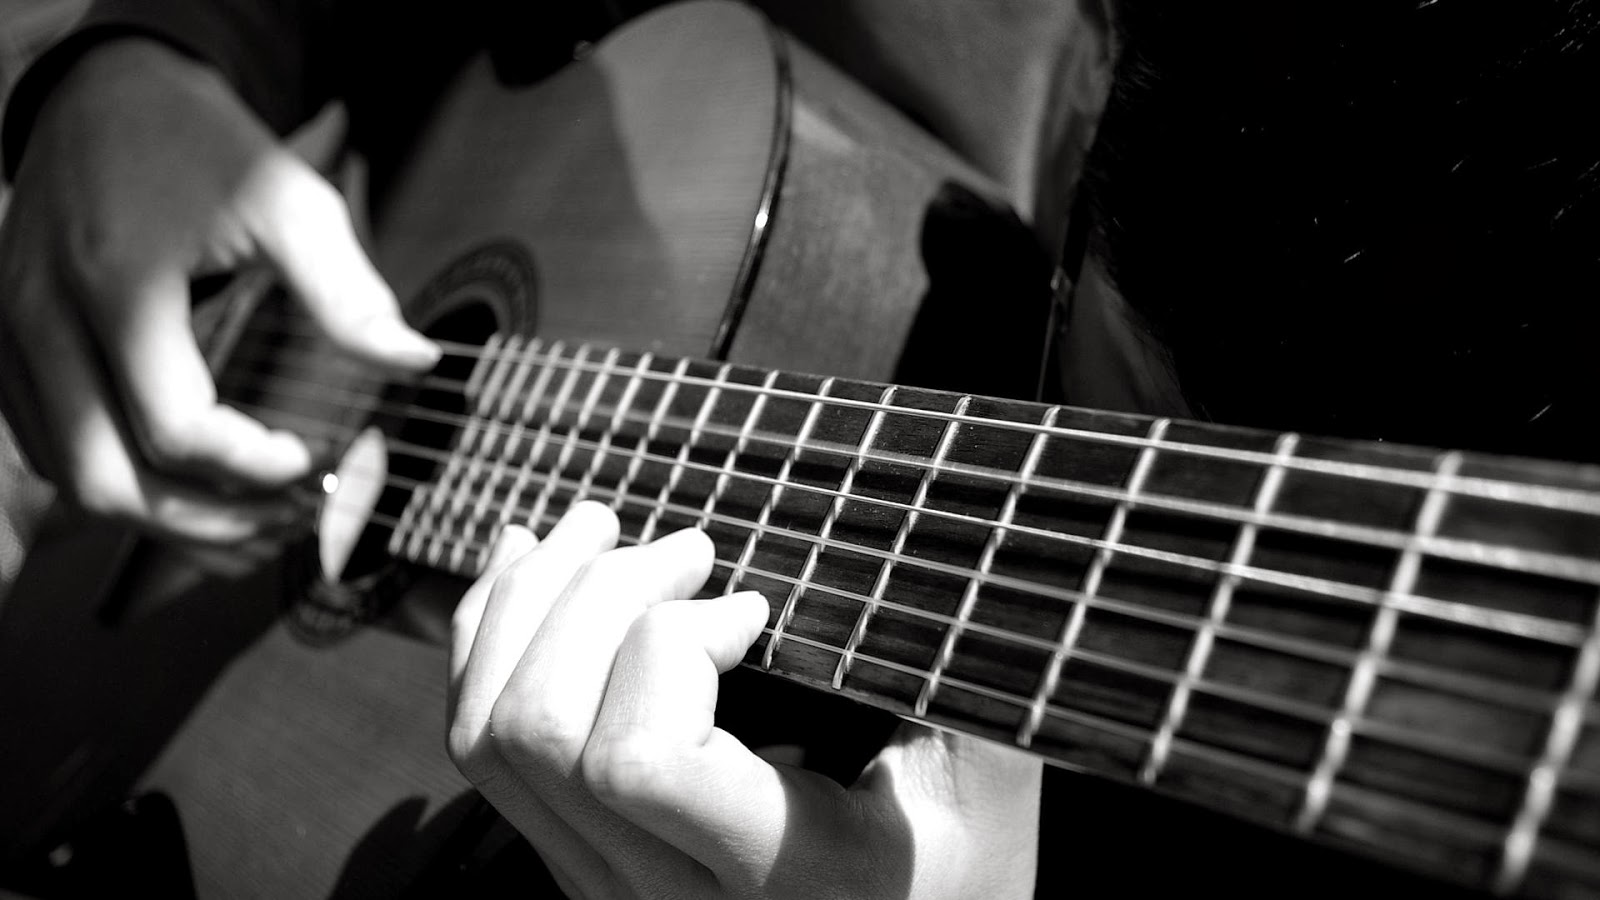 Pentatonic Scales: How to Avoid Playing the Same Licks Over and Over